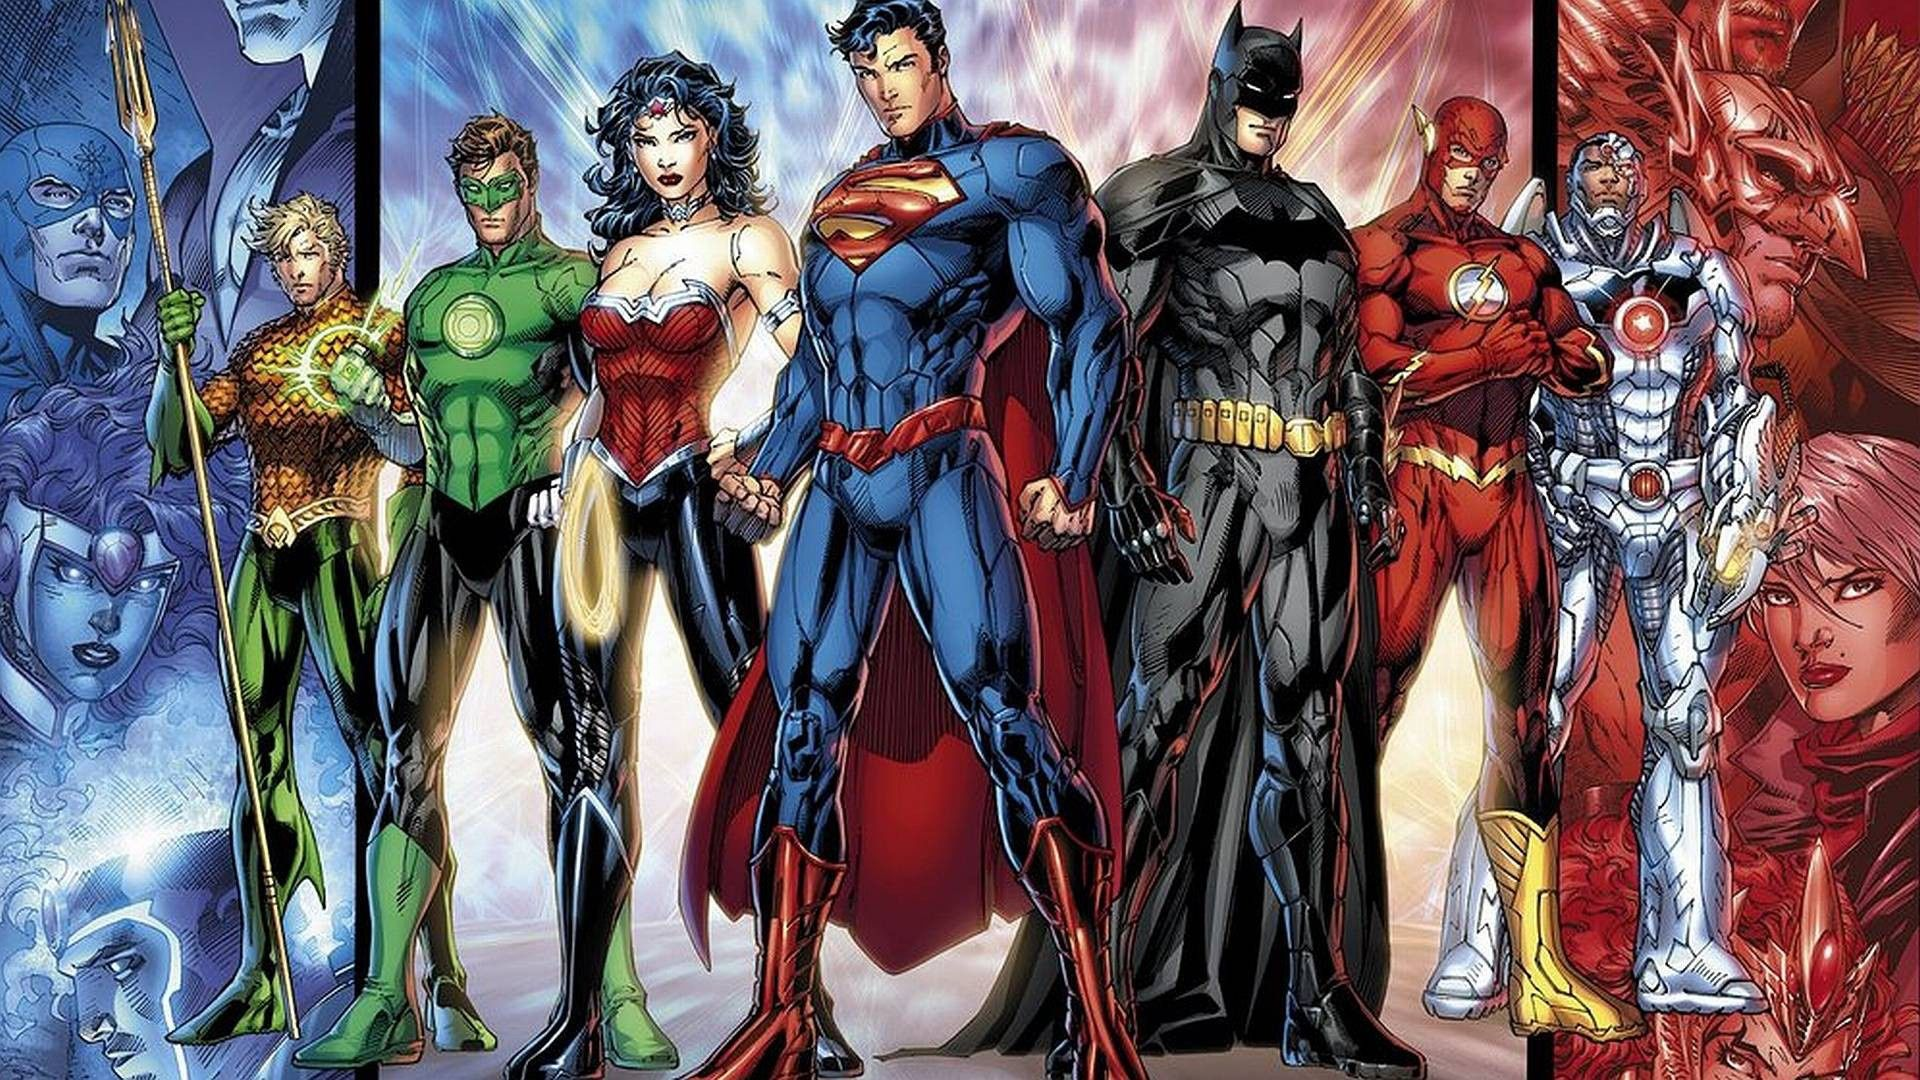 Justice League New 52 Wallpapers Top Free Justice League New 52